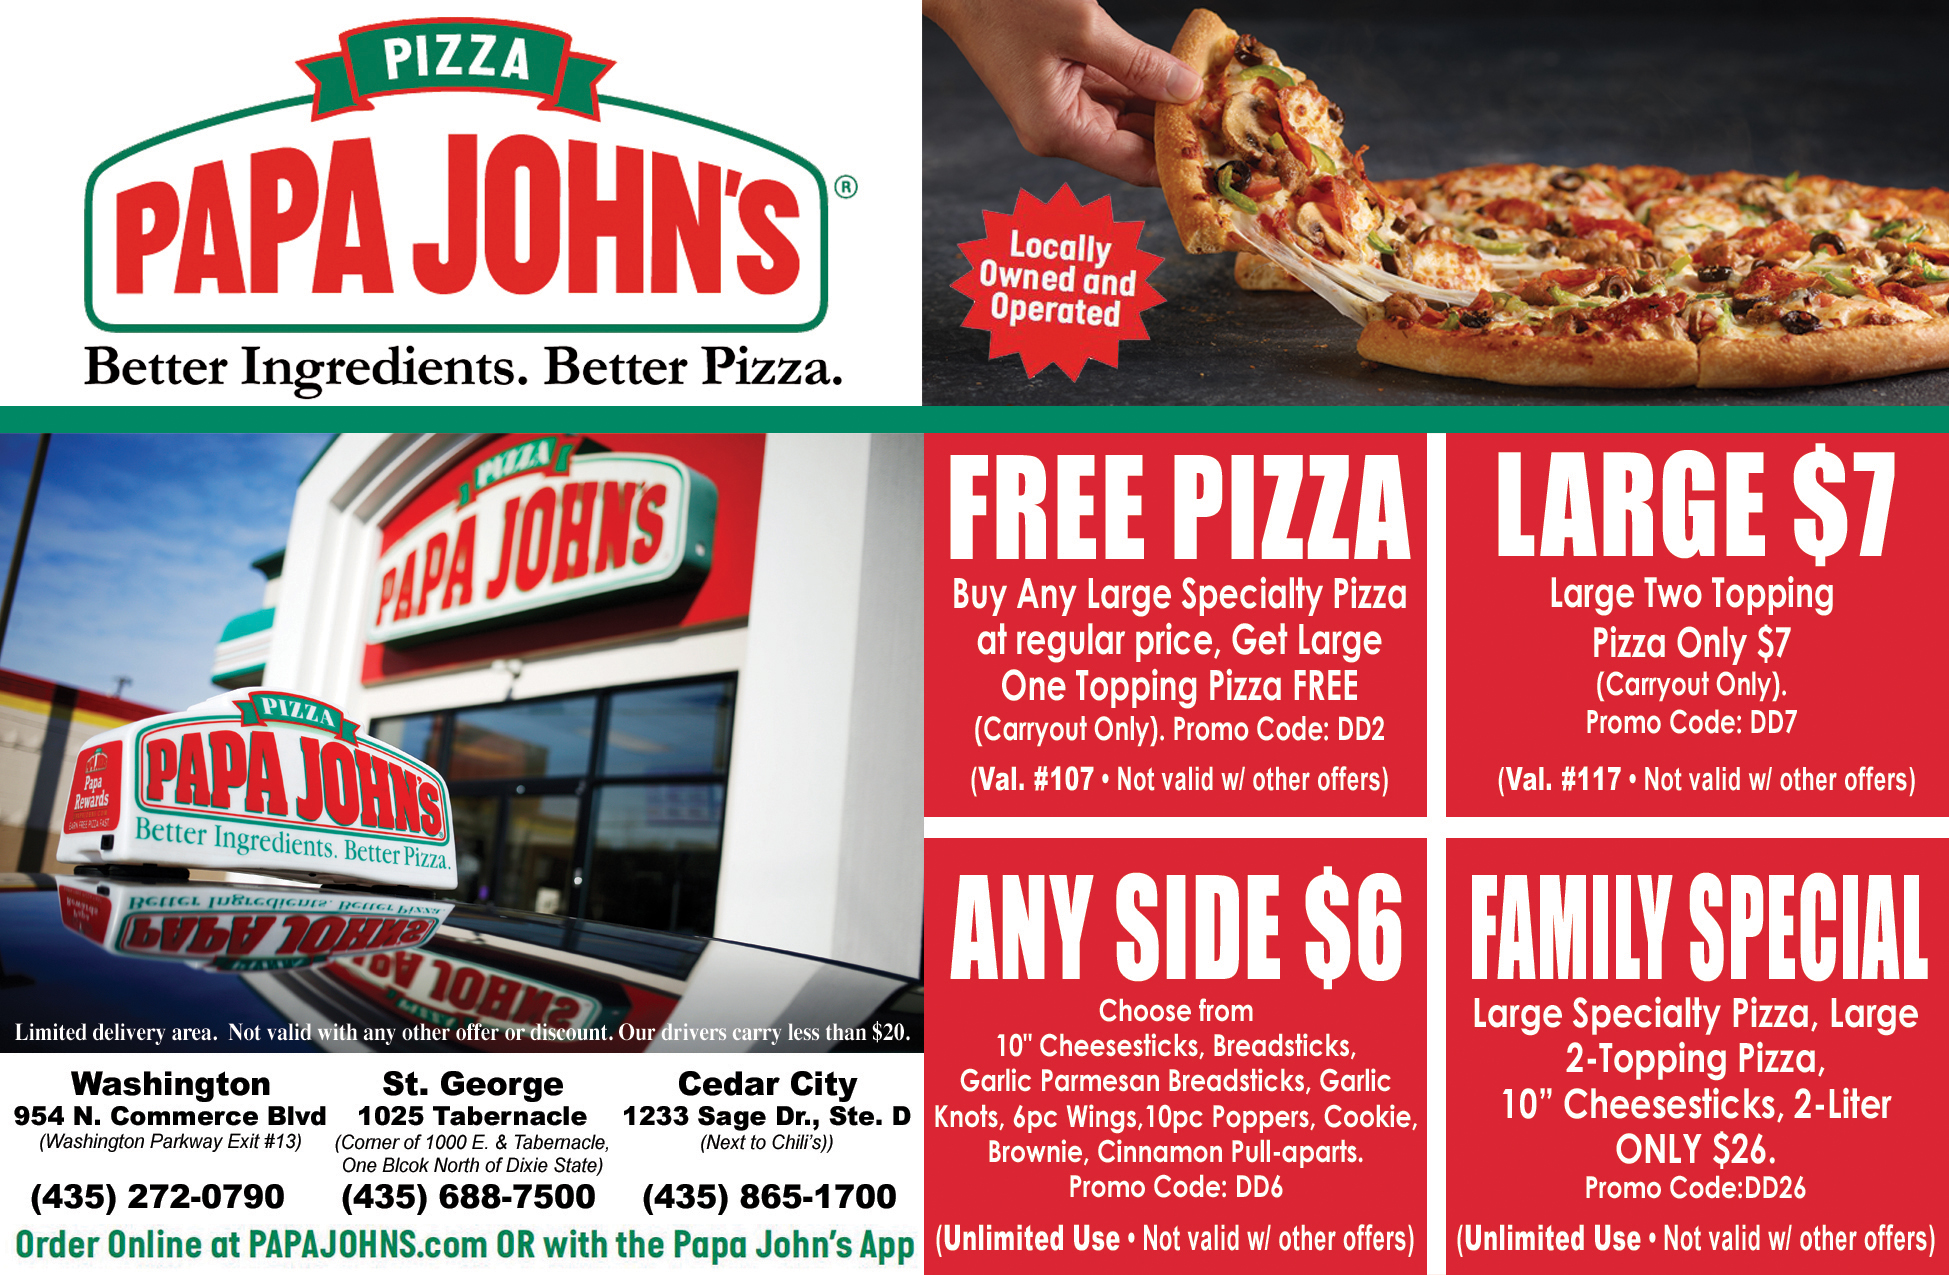 Papa Johns Pizza - deals, wings